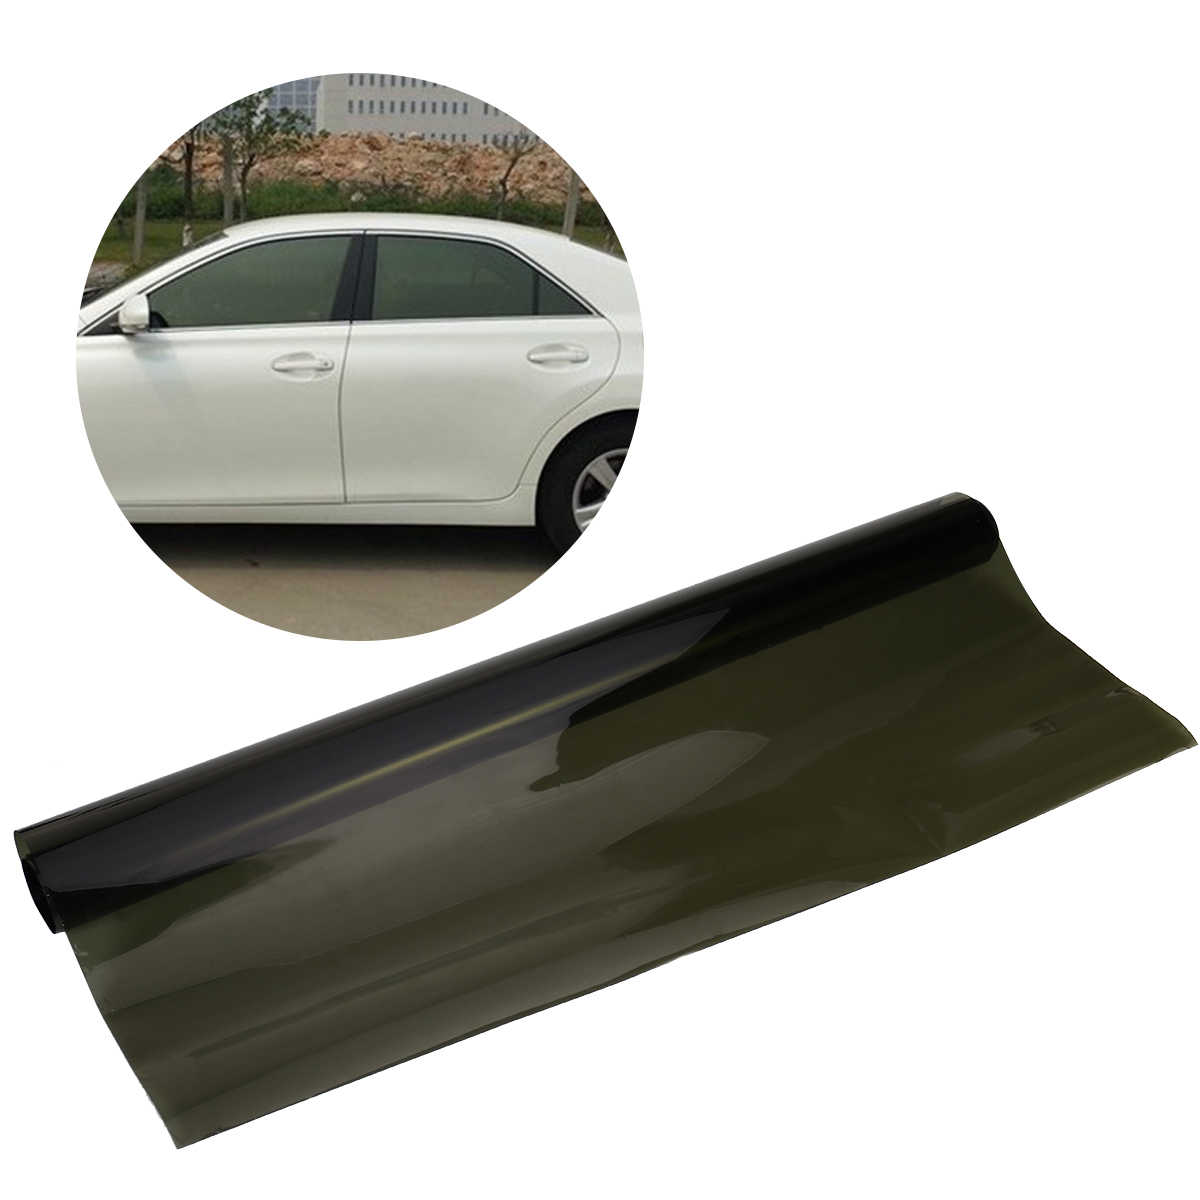 75cm × 6M Car Van Window Tint Film Universal Fit For Privacy & Sun Glare Heat Reduction Tinting Glass Sticker Window Sun Shade